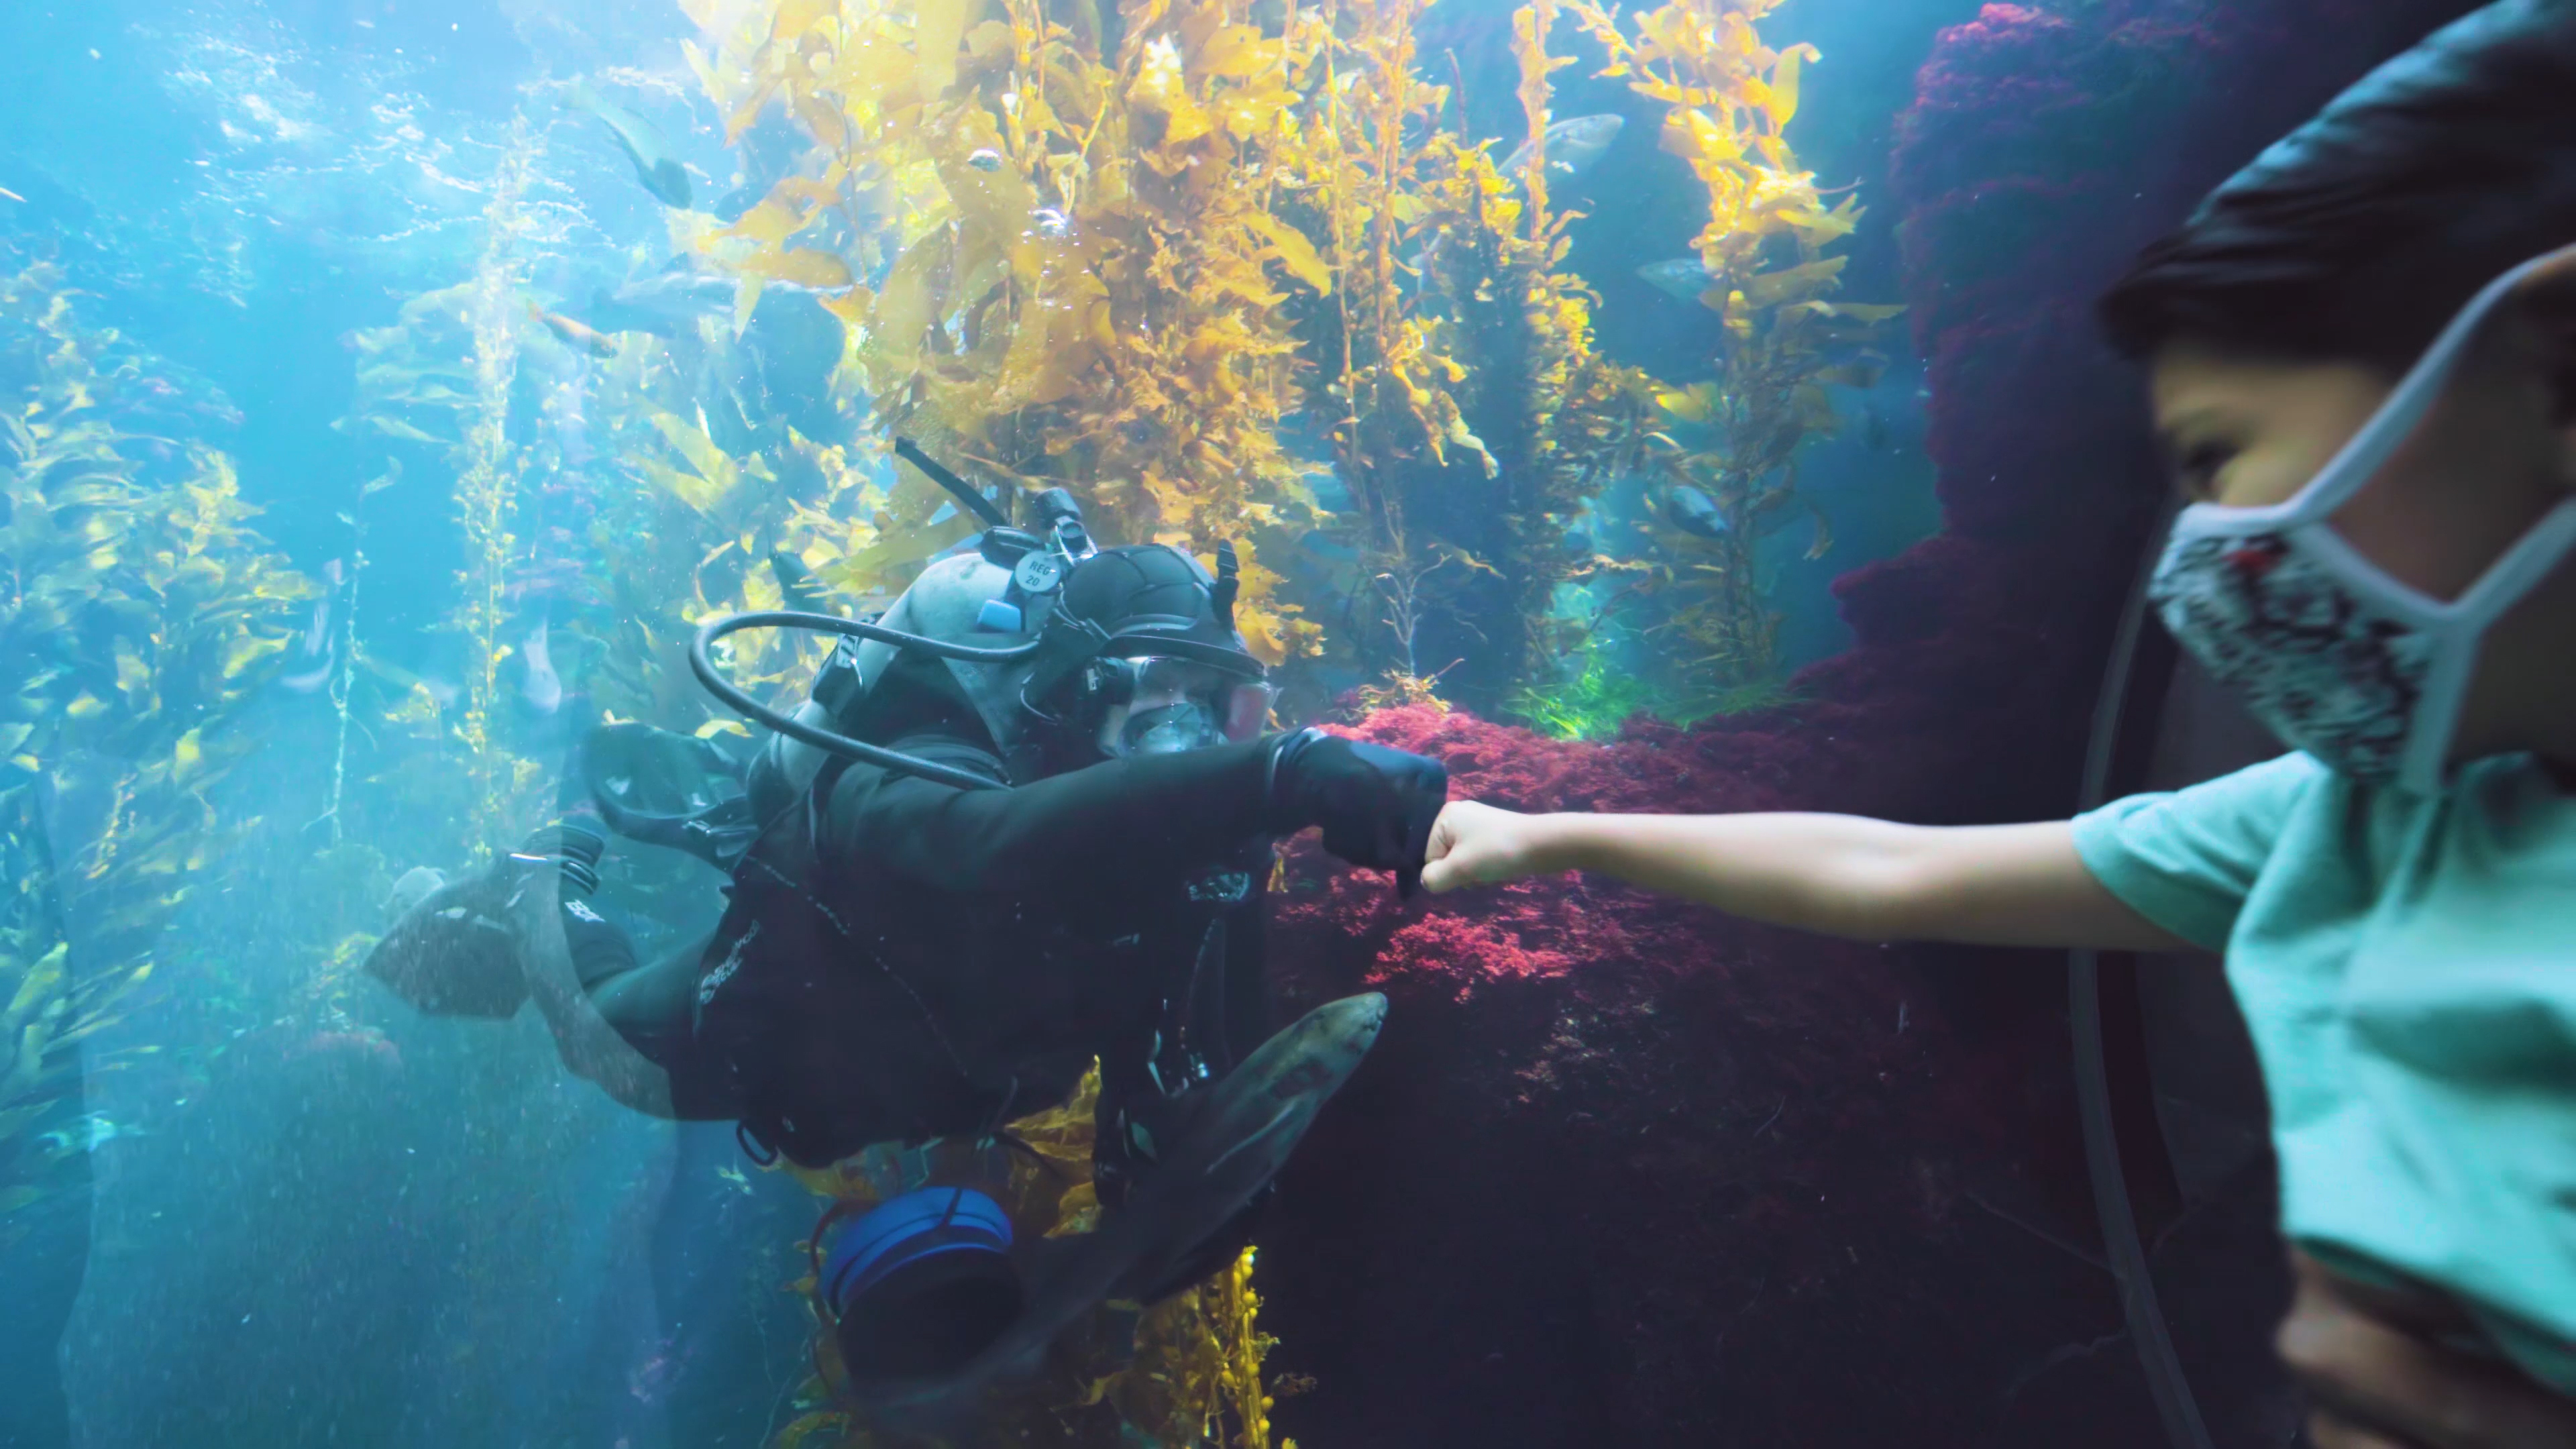 A child in a face covering fist bumps a diver through the acrylic window of the Science Center's Kelp Forest habitat.